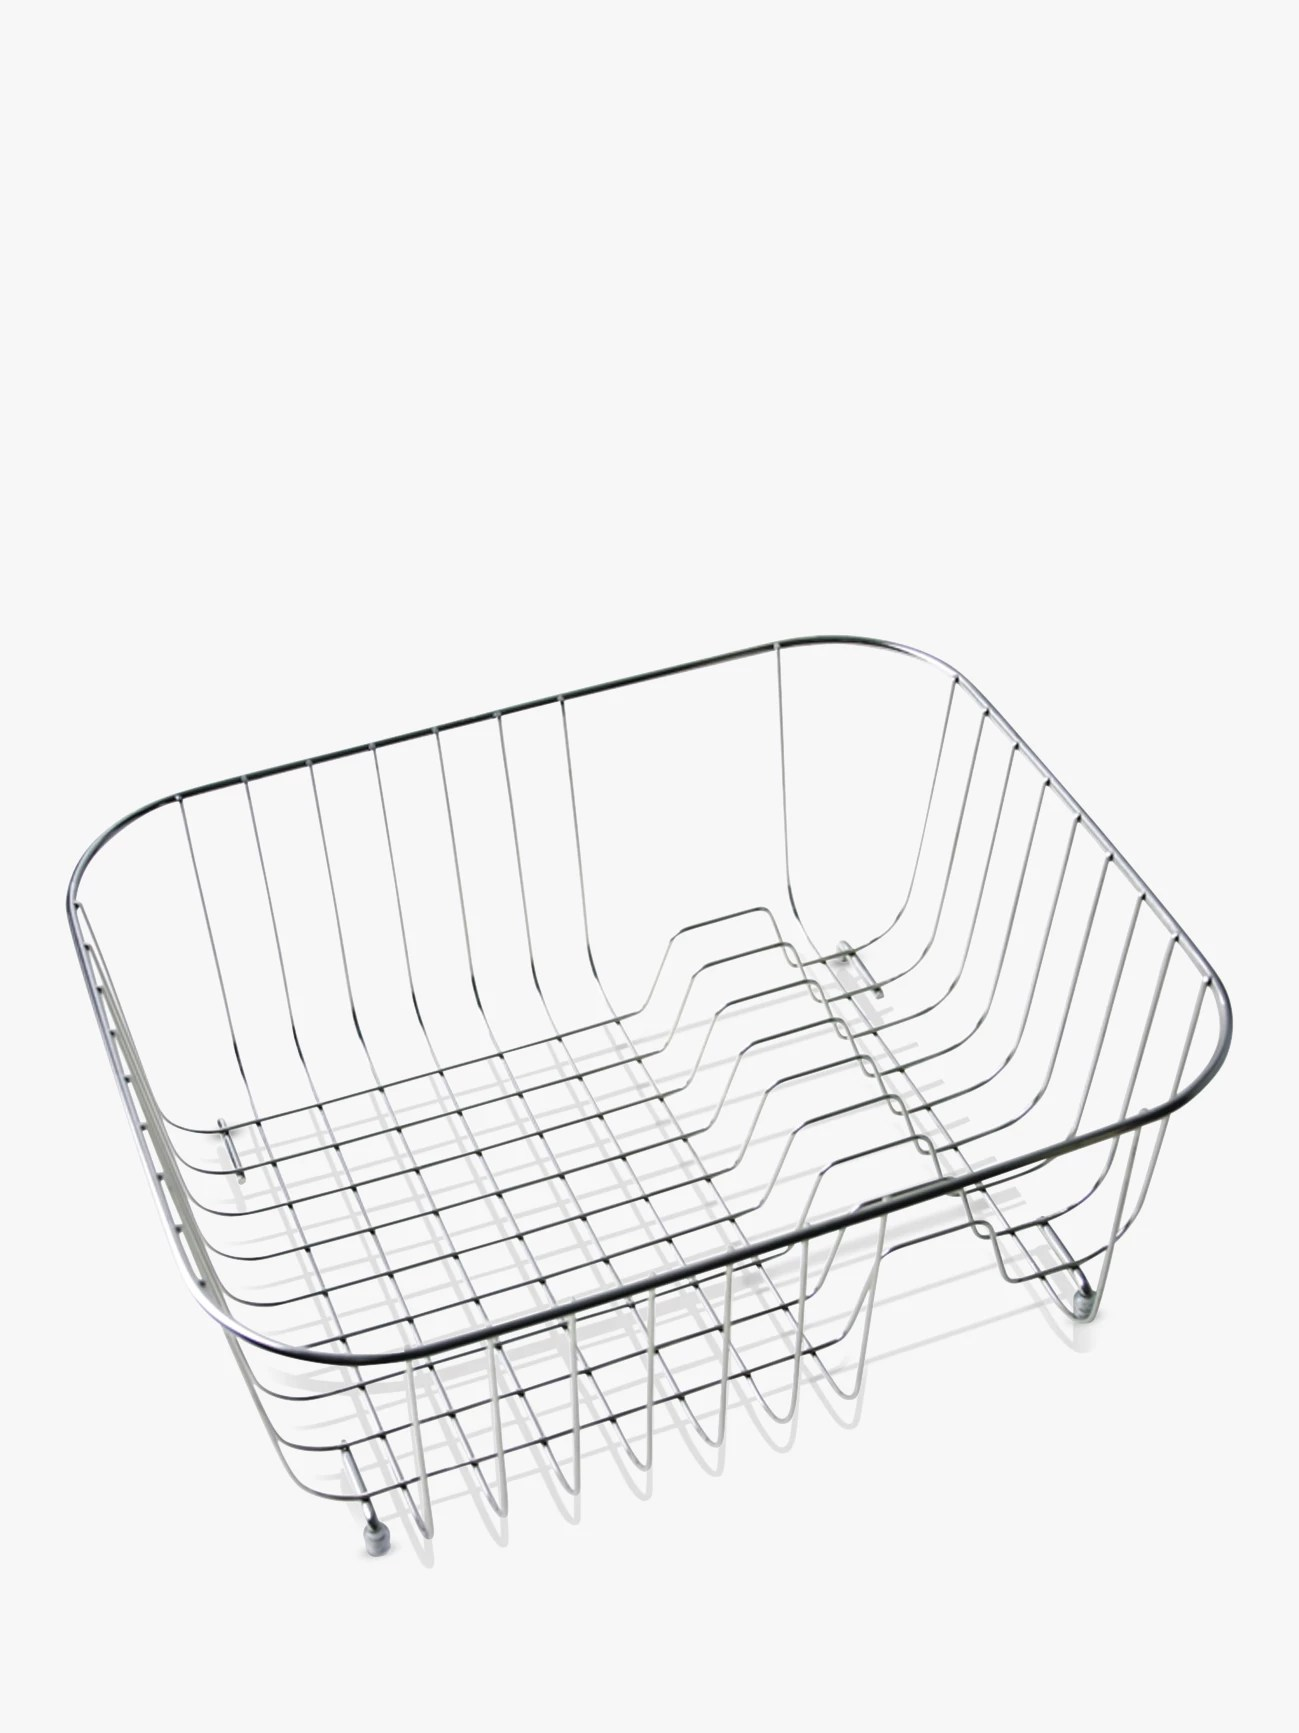 kitchen drainer basket drawers for cabinets dish racks mats cutlery john lewis clearwater tango sink rack stainless steel